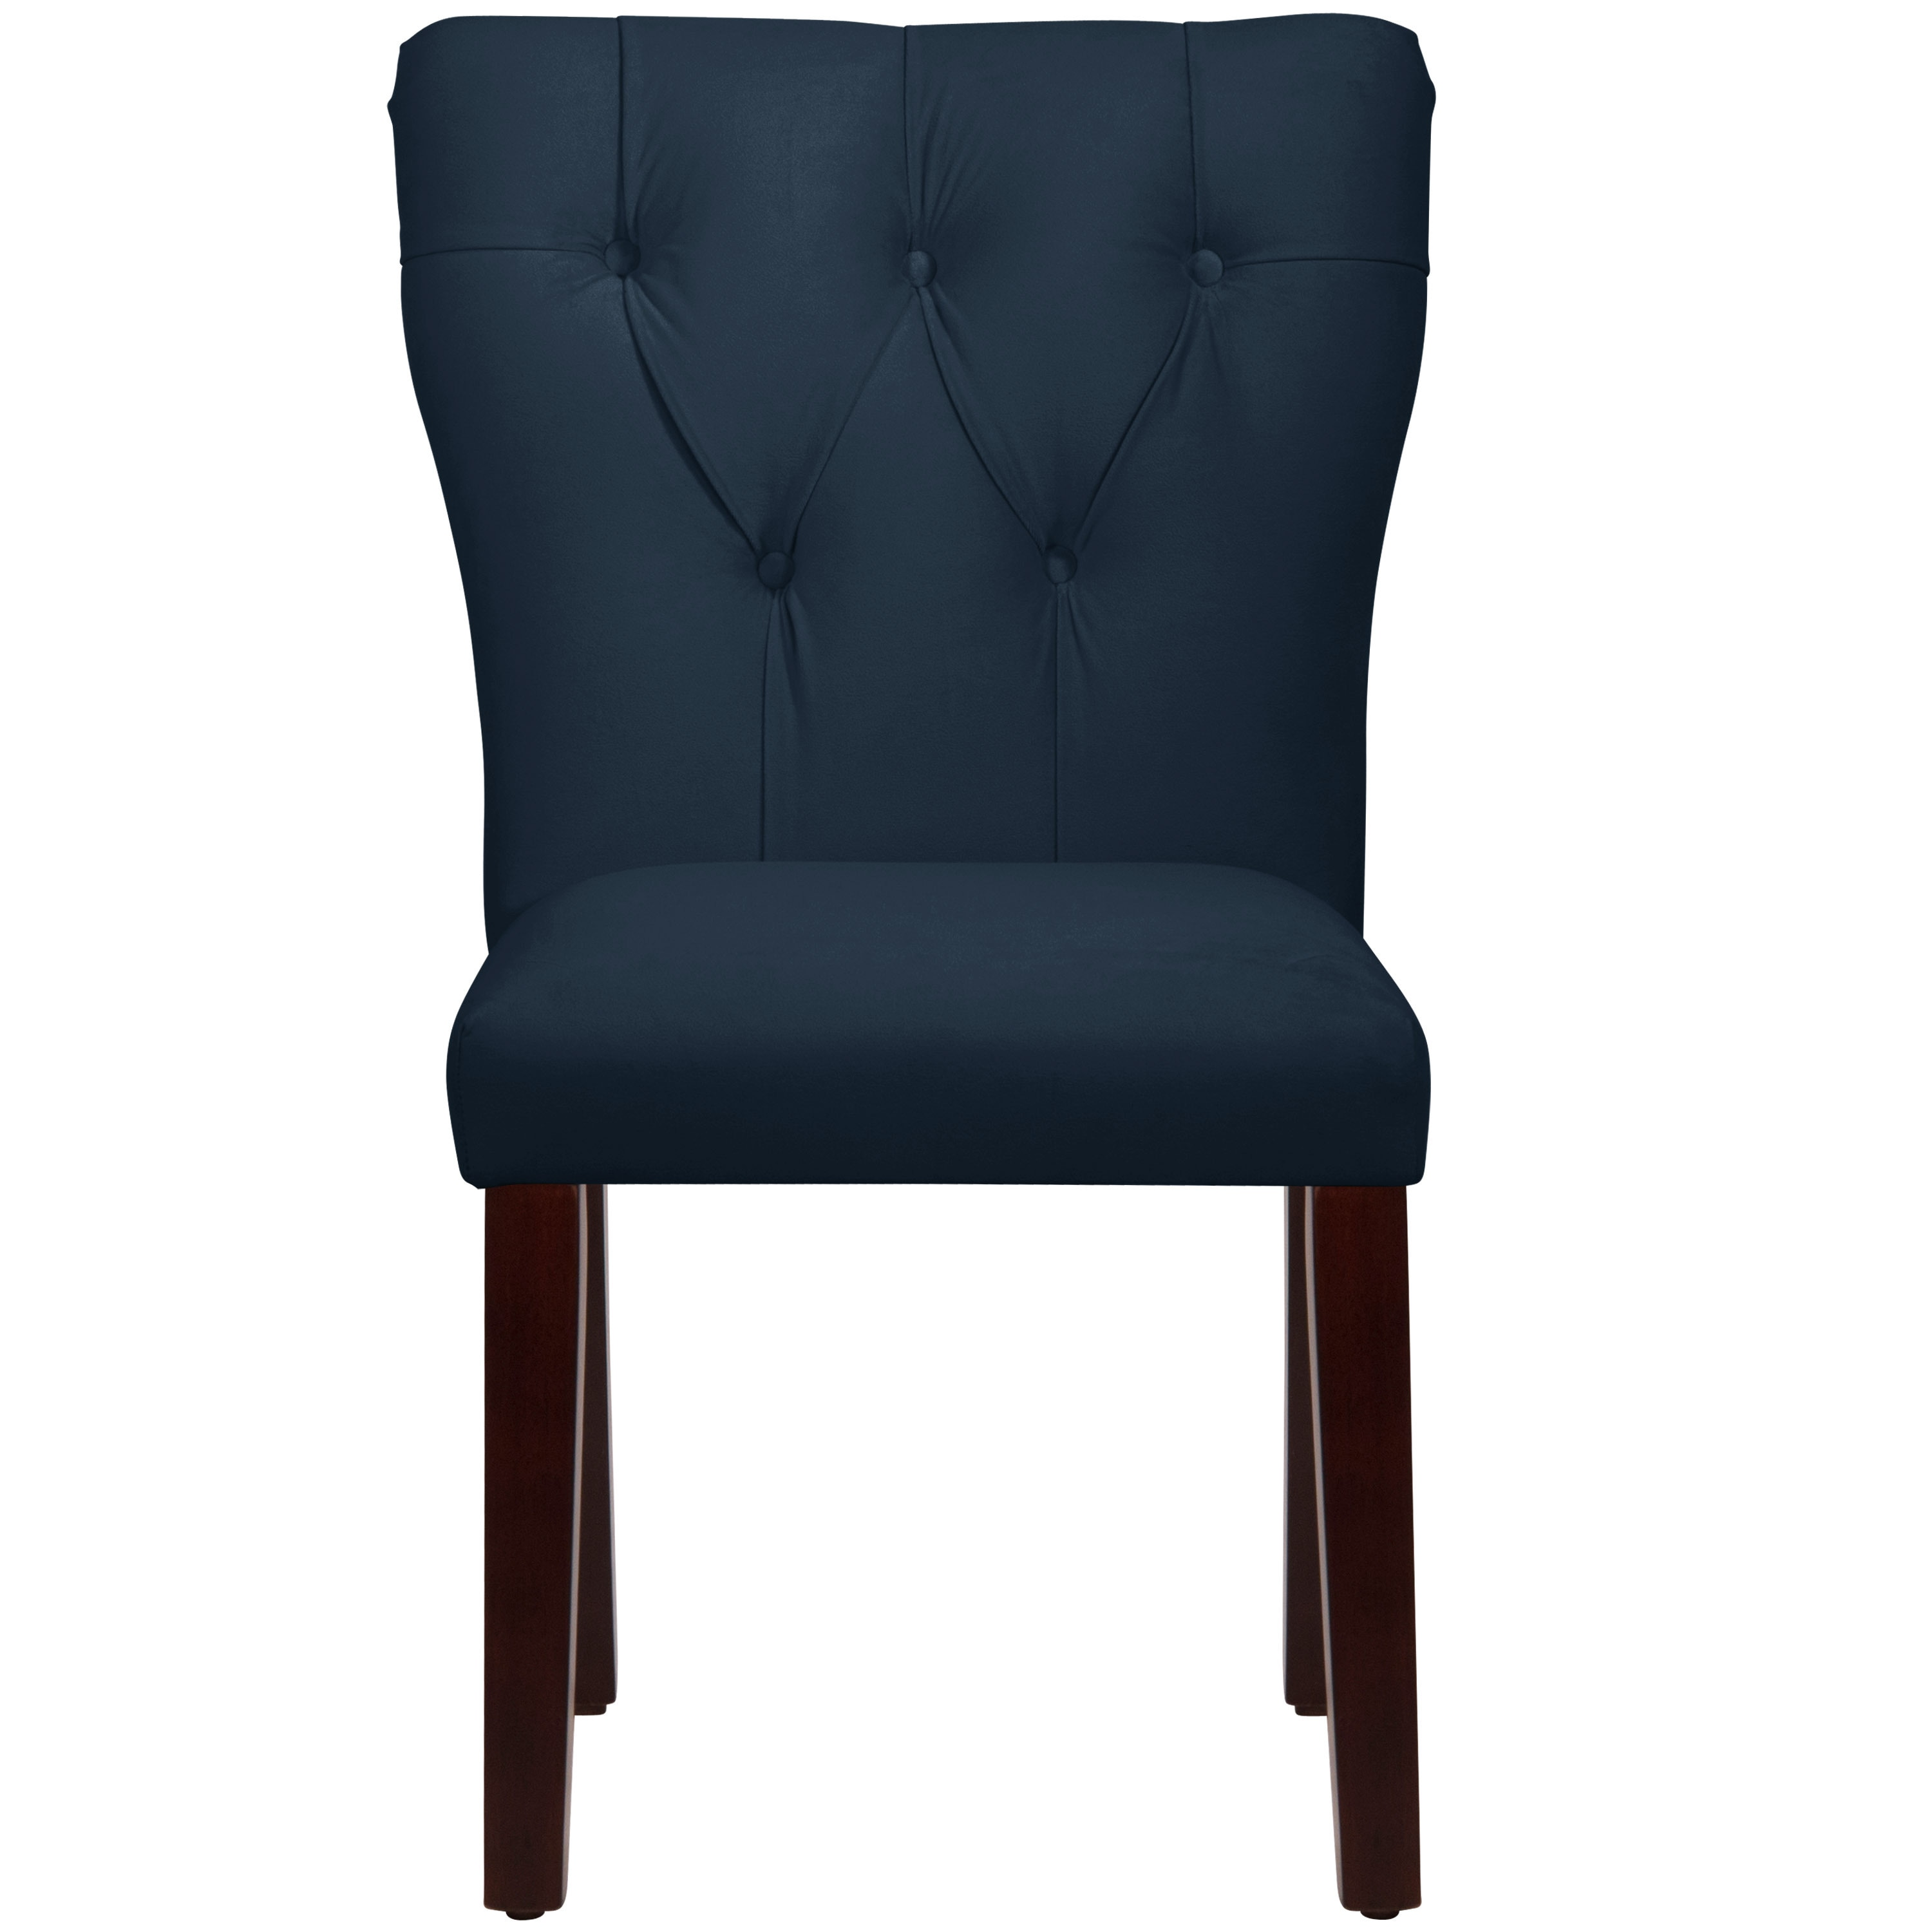 Skyline furniture navy hardwood polyurethane tufted hourglass dining chair